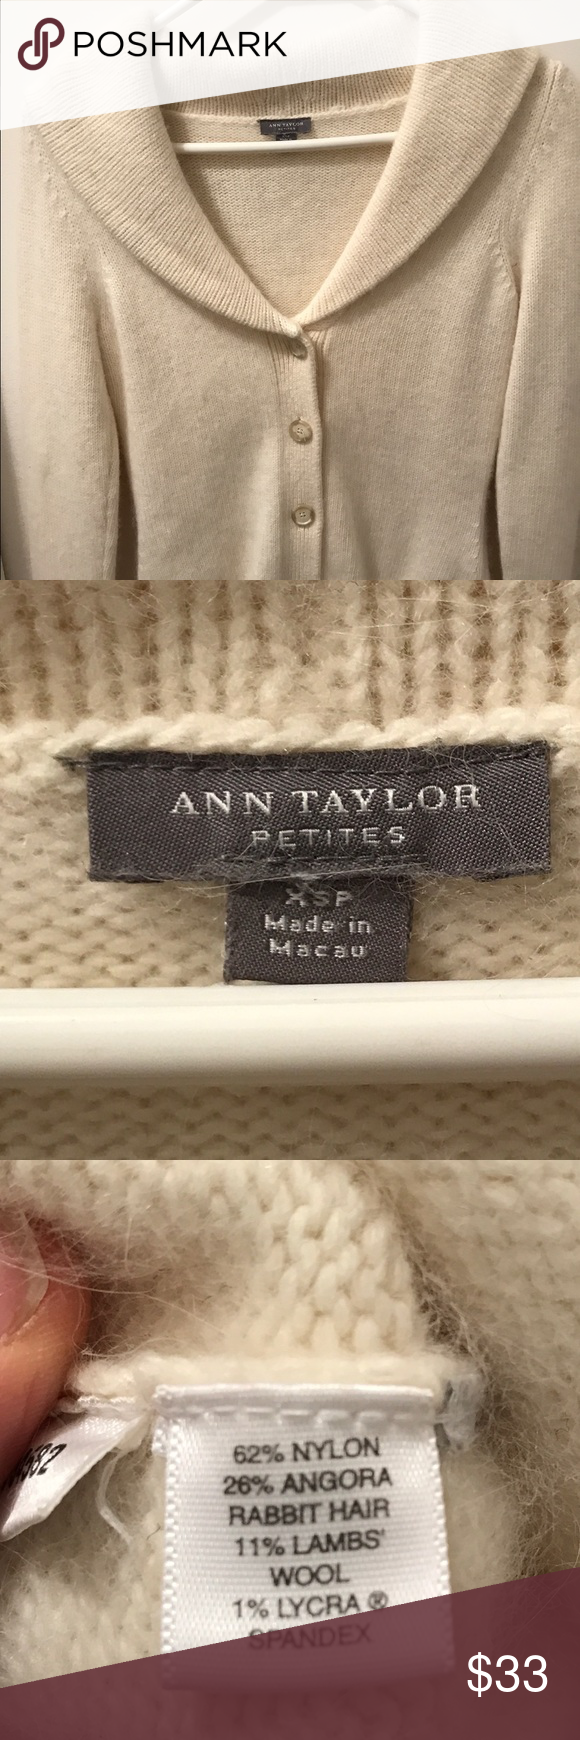 Ann Taylor sweater angora and lambswool Excellent condition no rips tears or stains save 15% when you bundle Ann Taylor Sweaters Cardigans